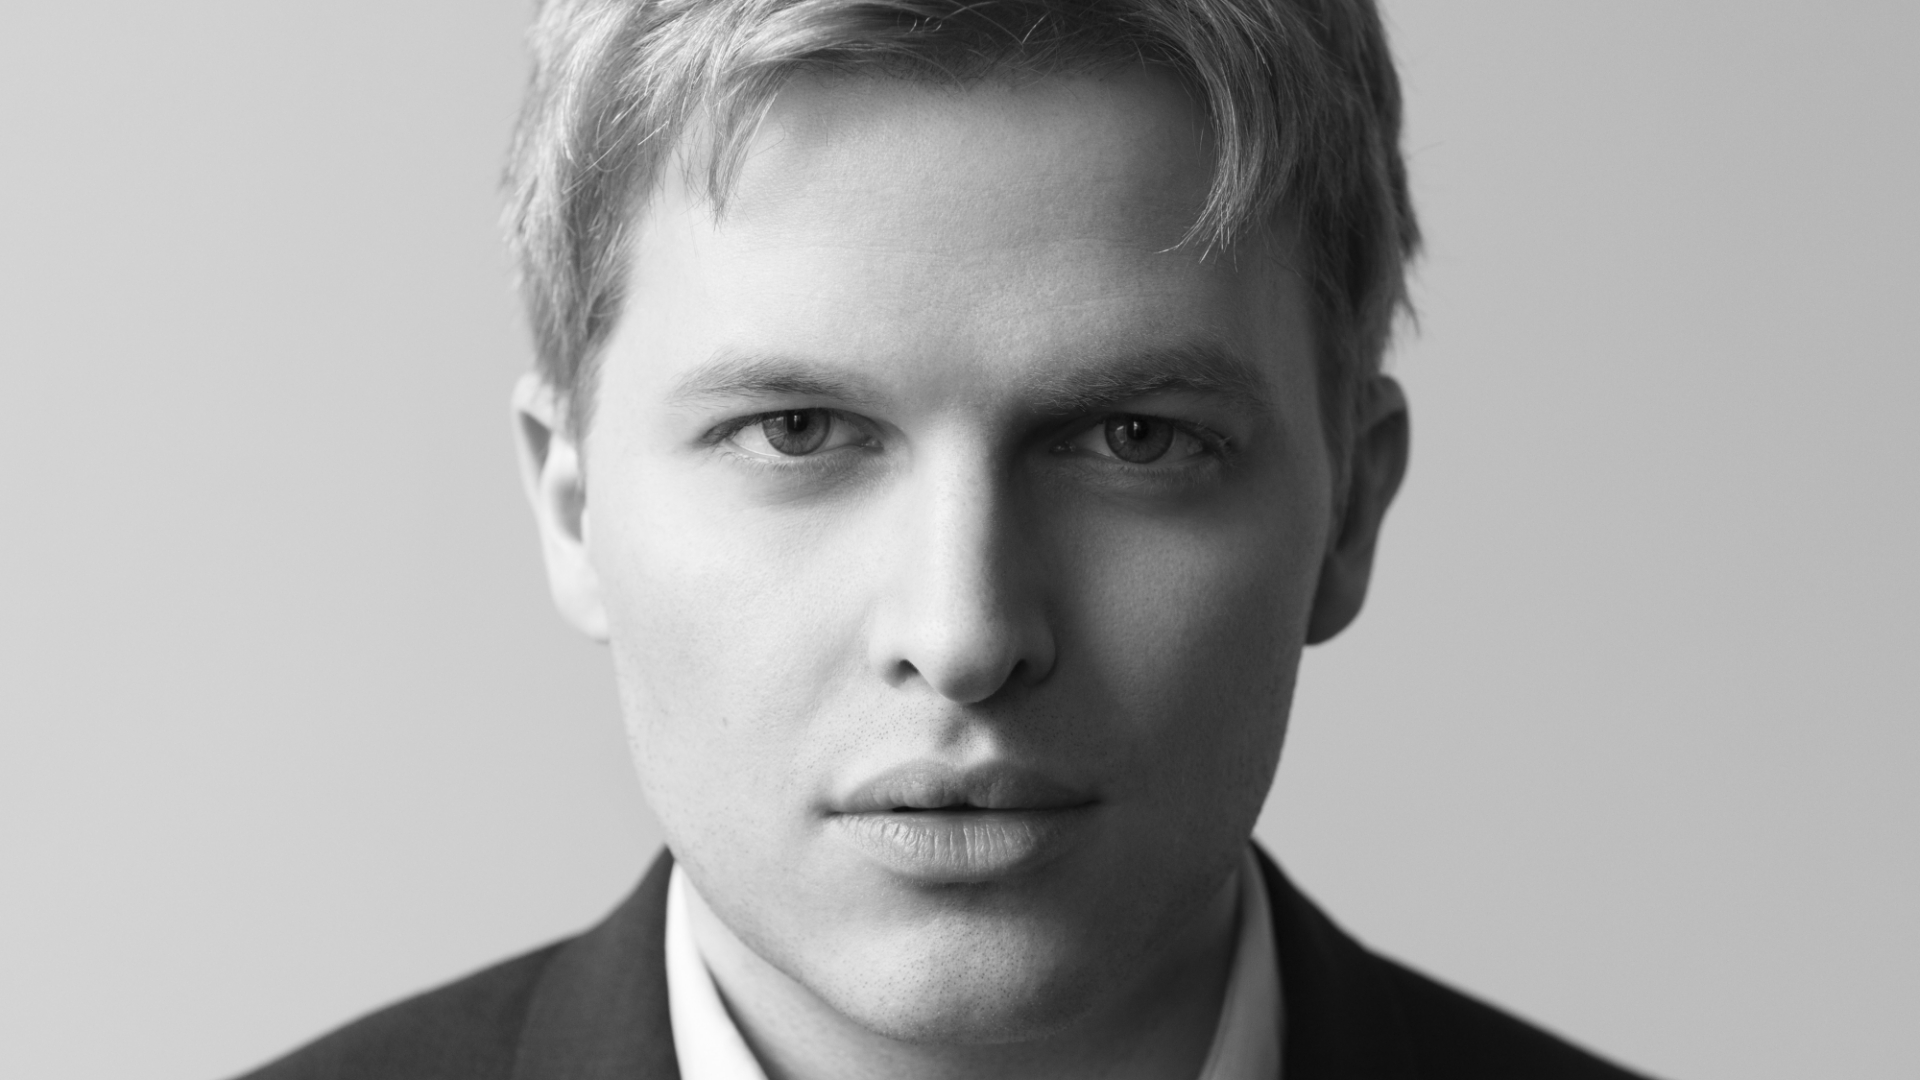 Ronan Farrow on the 'Lies, Spies and Conspiracy' That Blocked Reporting on Weinstein Scandal